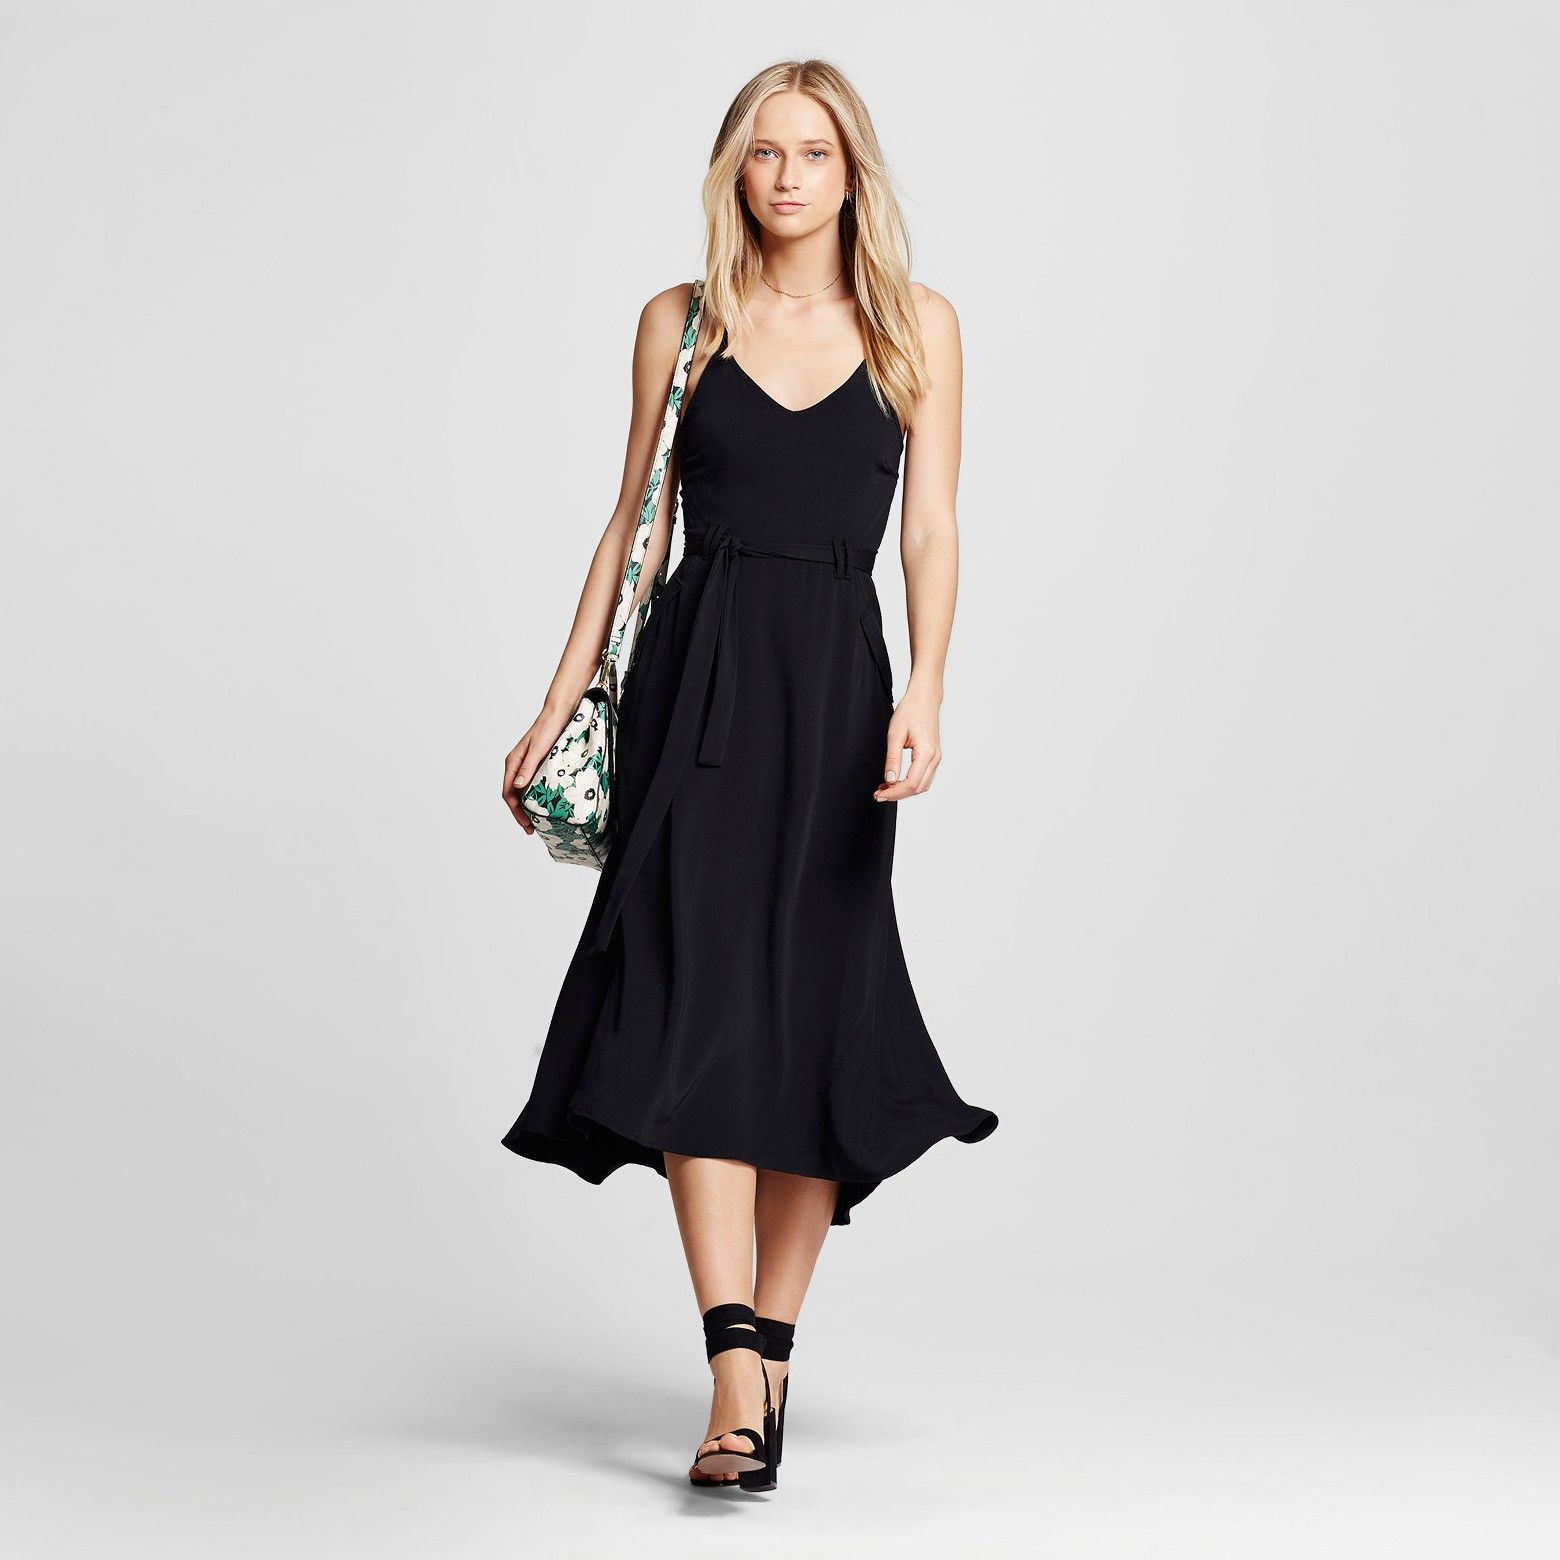 The Utility Midi Dress - Who What Wear™ offers the look of a slip dress, given stylish structure with the simple addition of pockets and a belted waistline. Super-versatile by design, our slim-cut dress layers easily over tees and long-sleeve tops; midi length is great with everything from sandals to sneakers to booties.